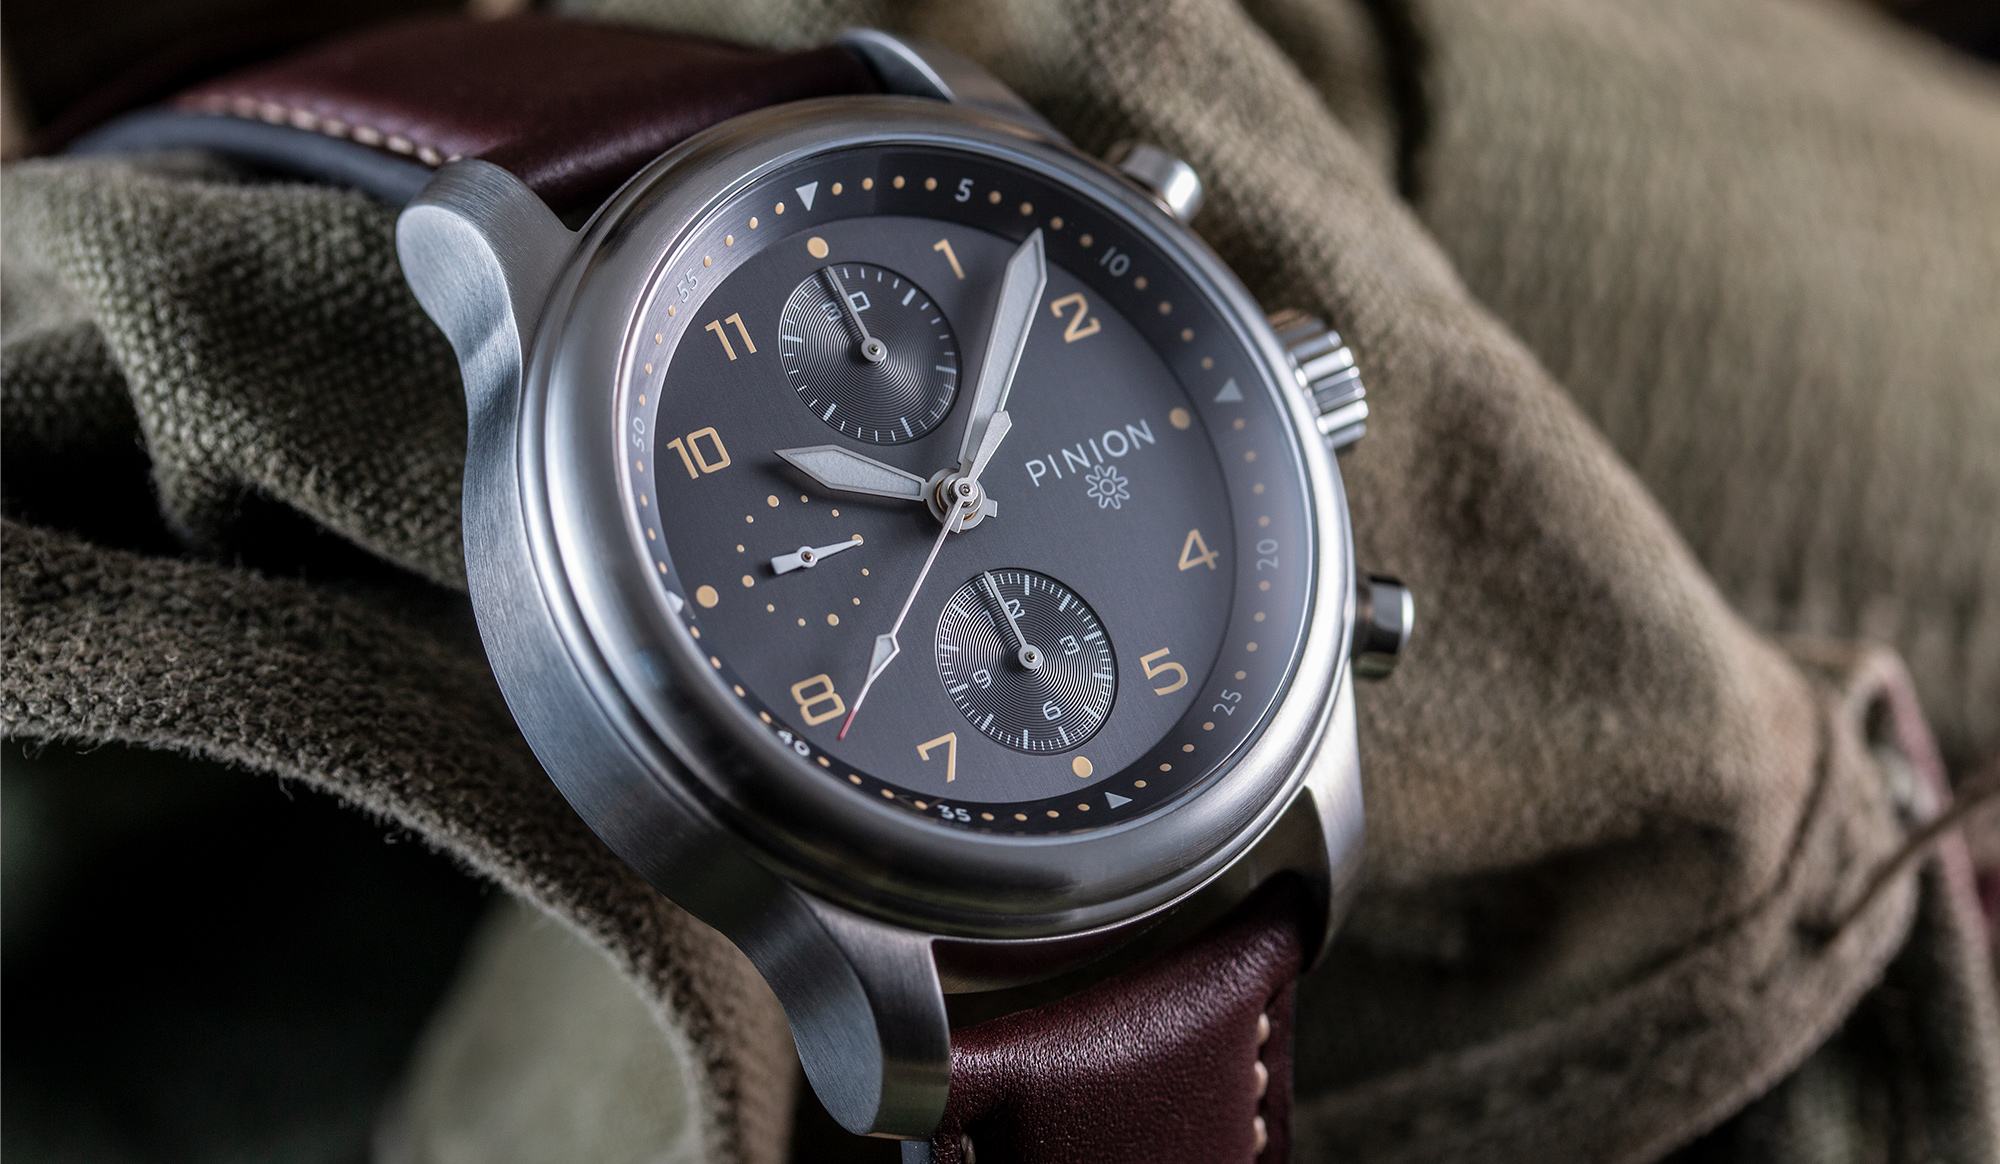 pinion-elapse-chronograph-anthracite-dial-watch-004-home